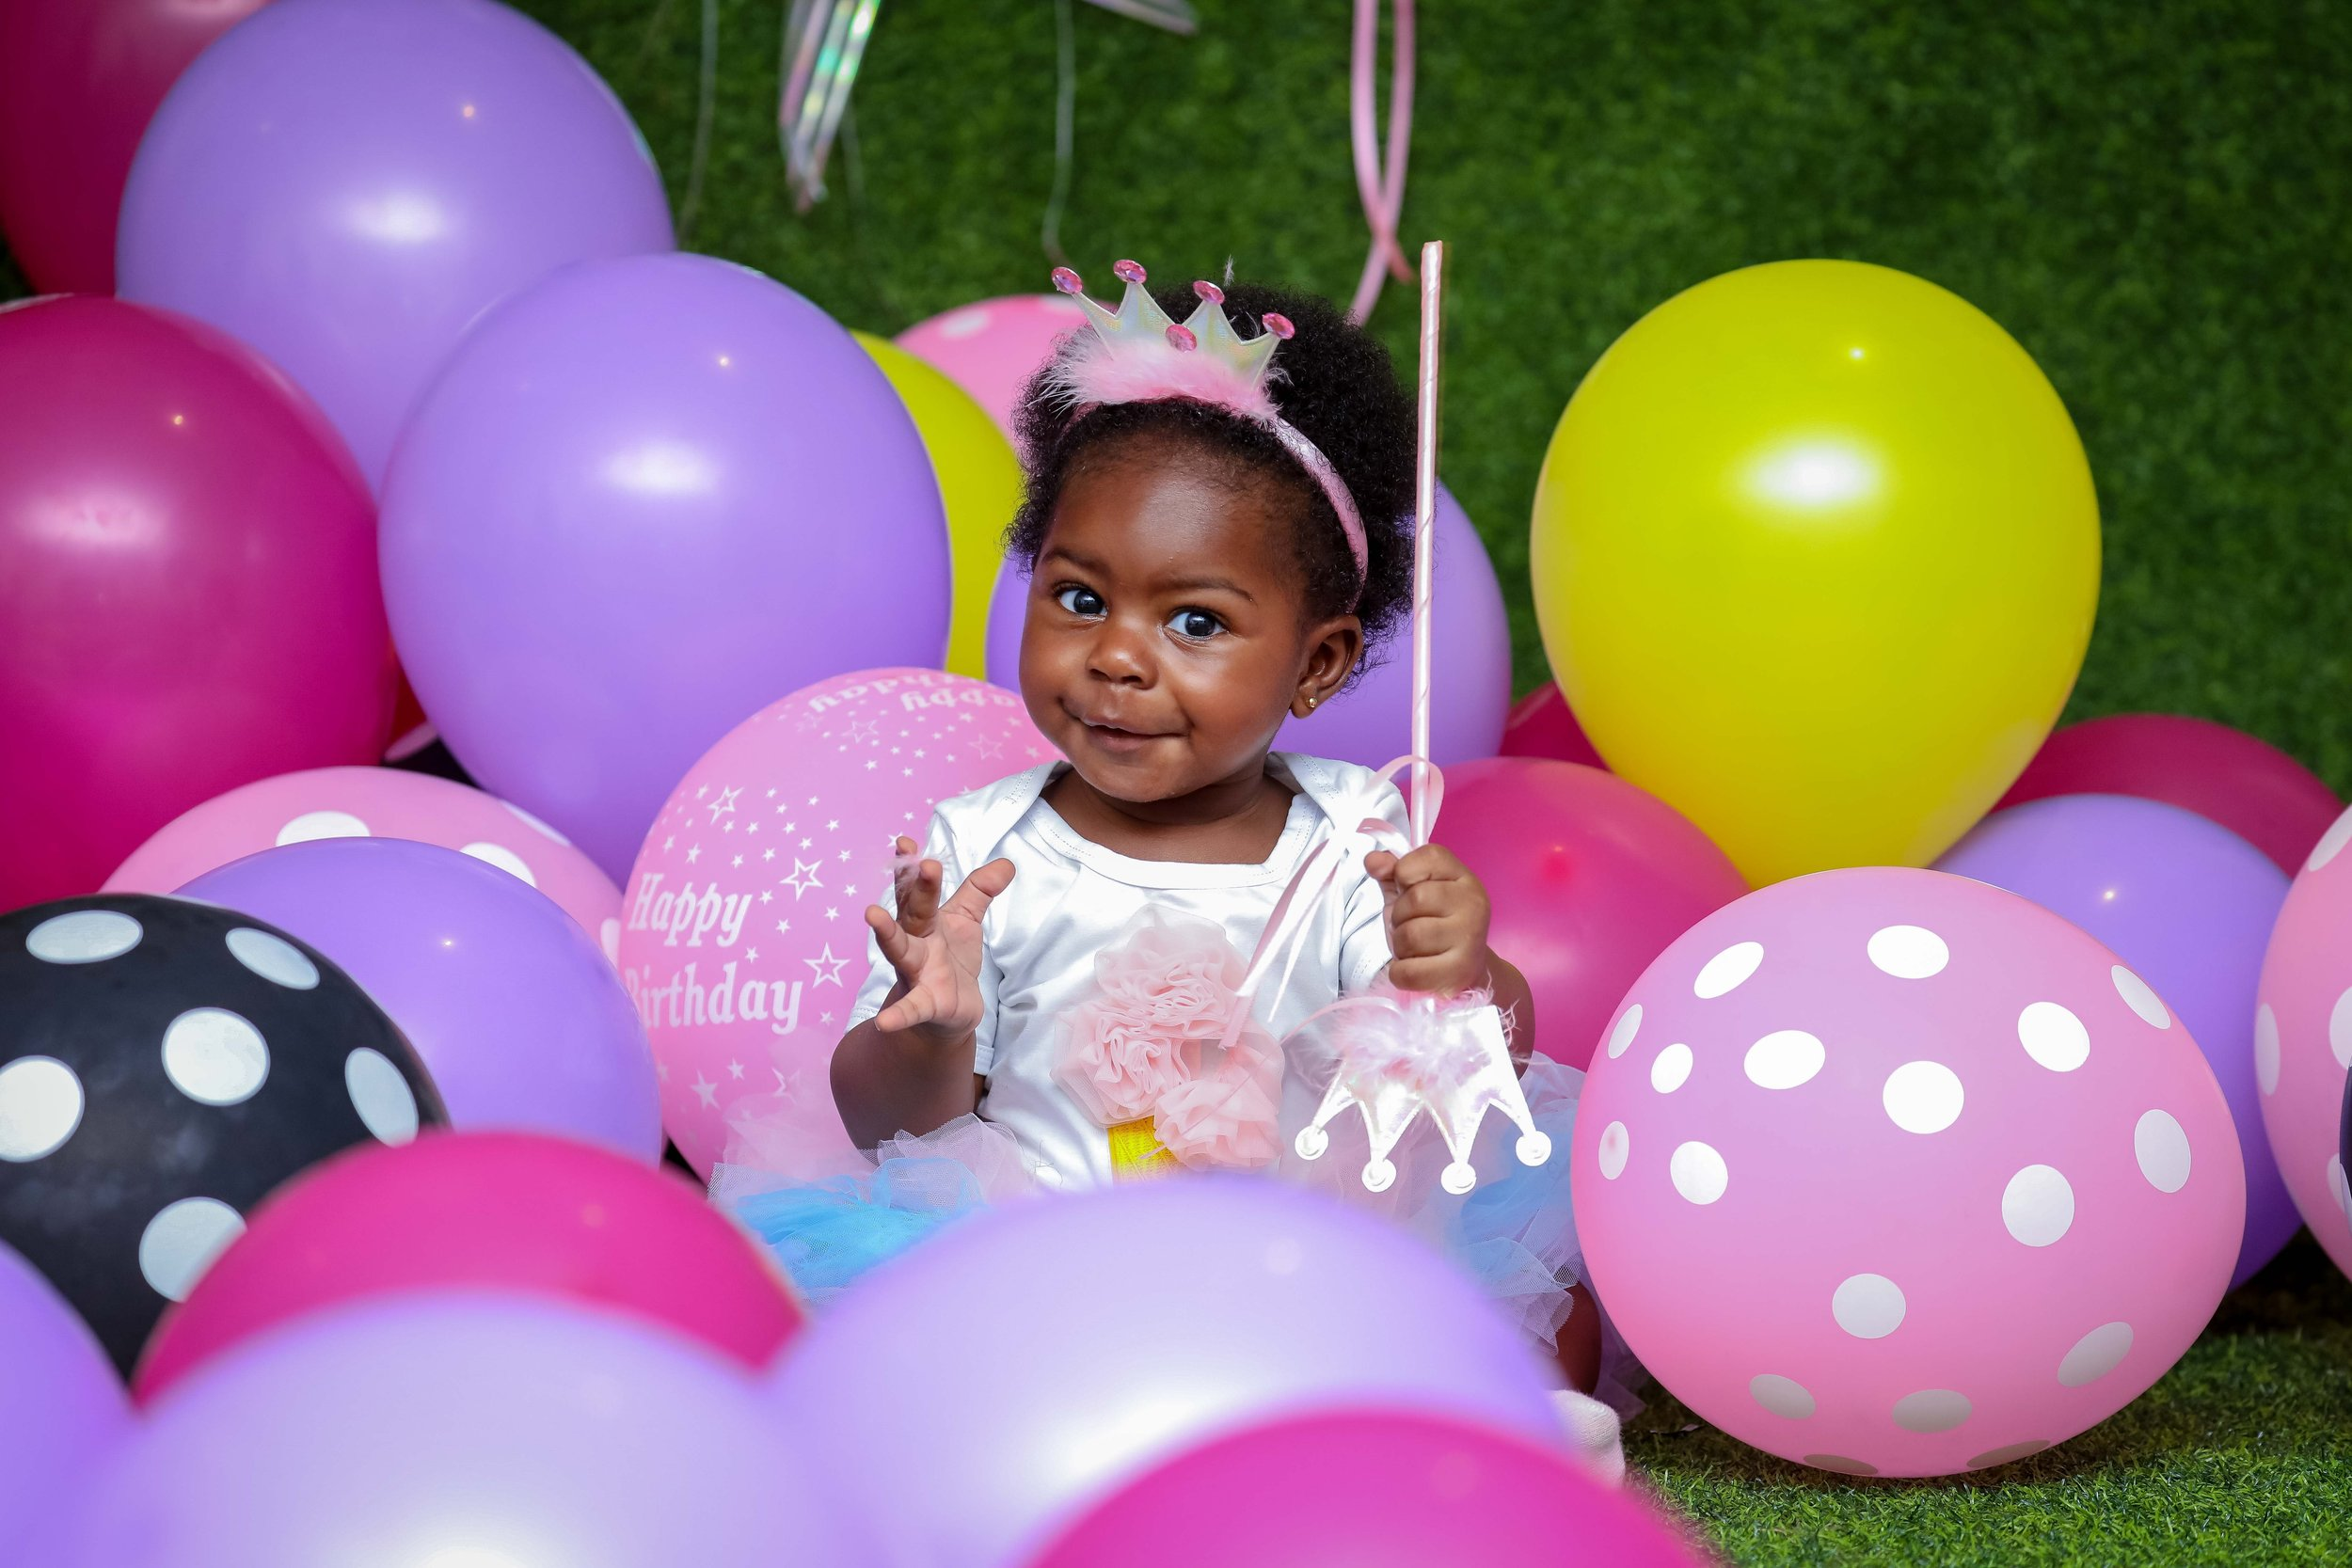 balloons-birthday-celebration-2093717.jpg